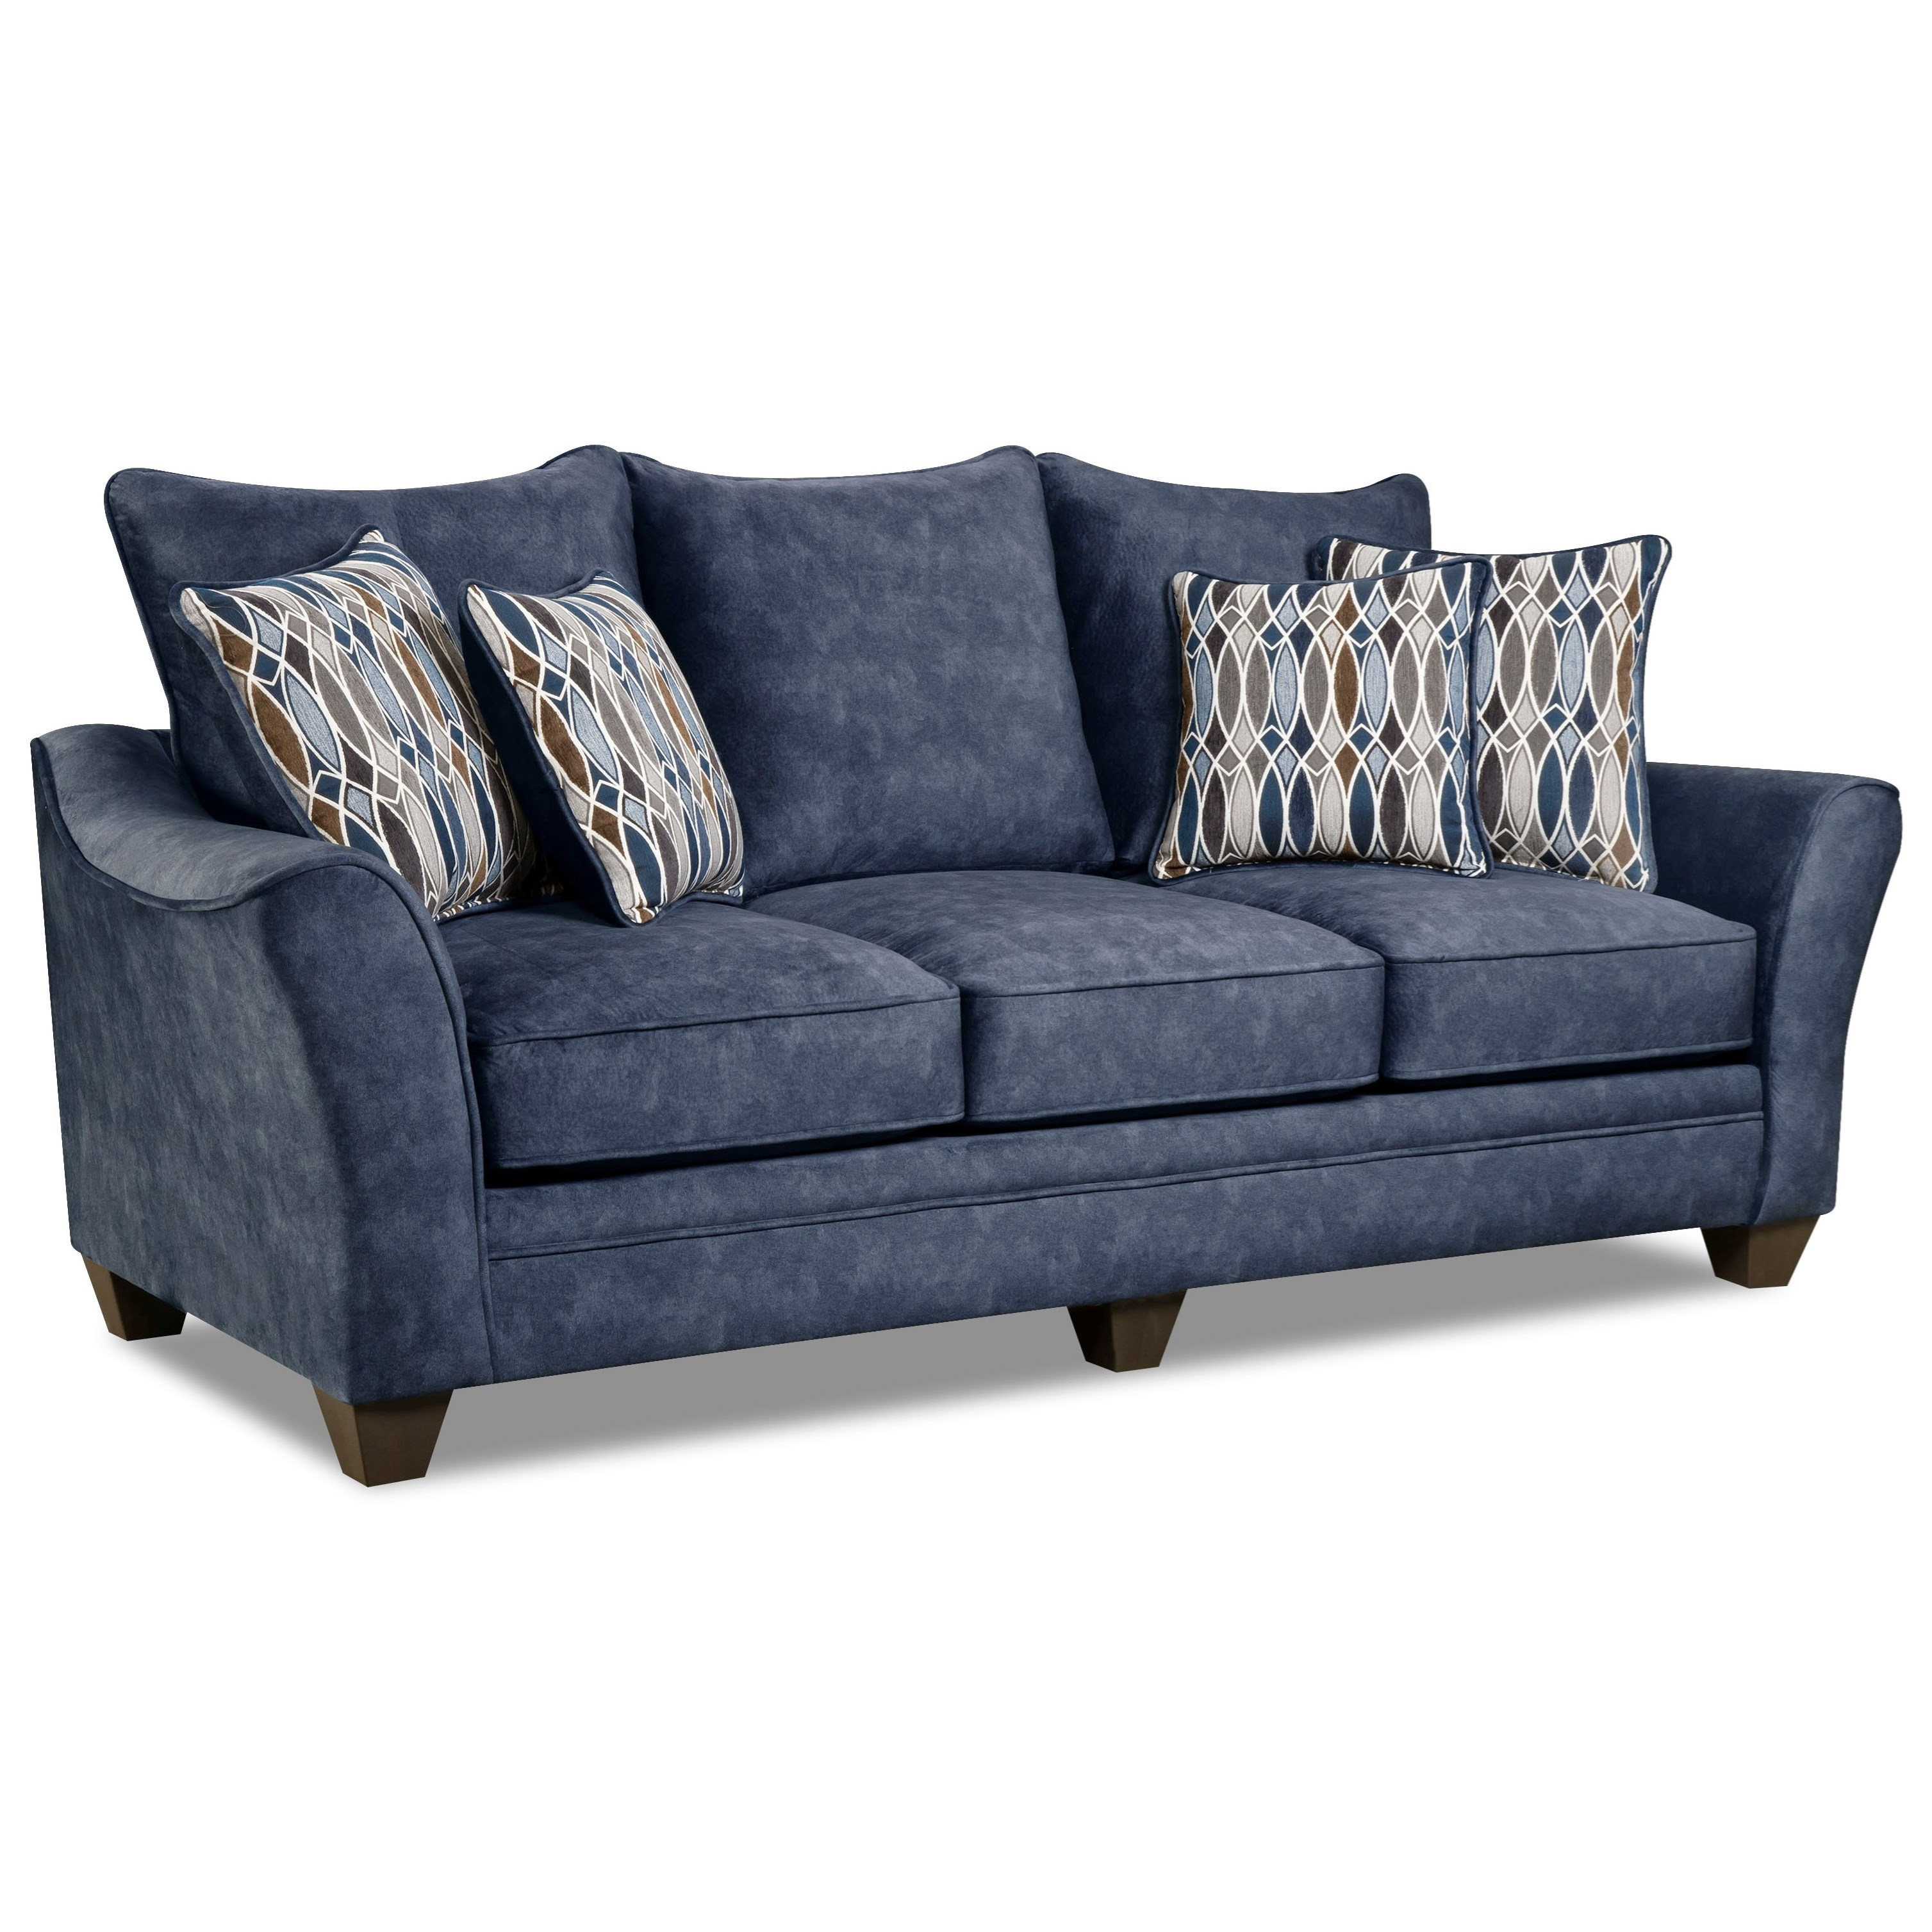 American Sofa Images Athena Navy Sofa With Casual Look By American Furniture At Great American Home Store